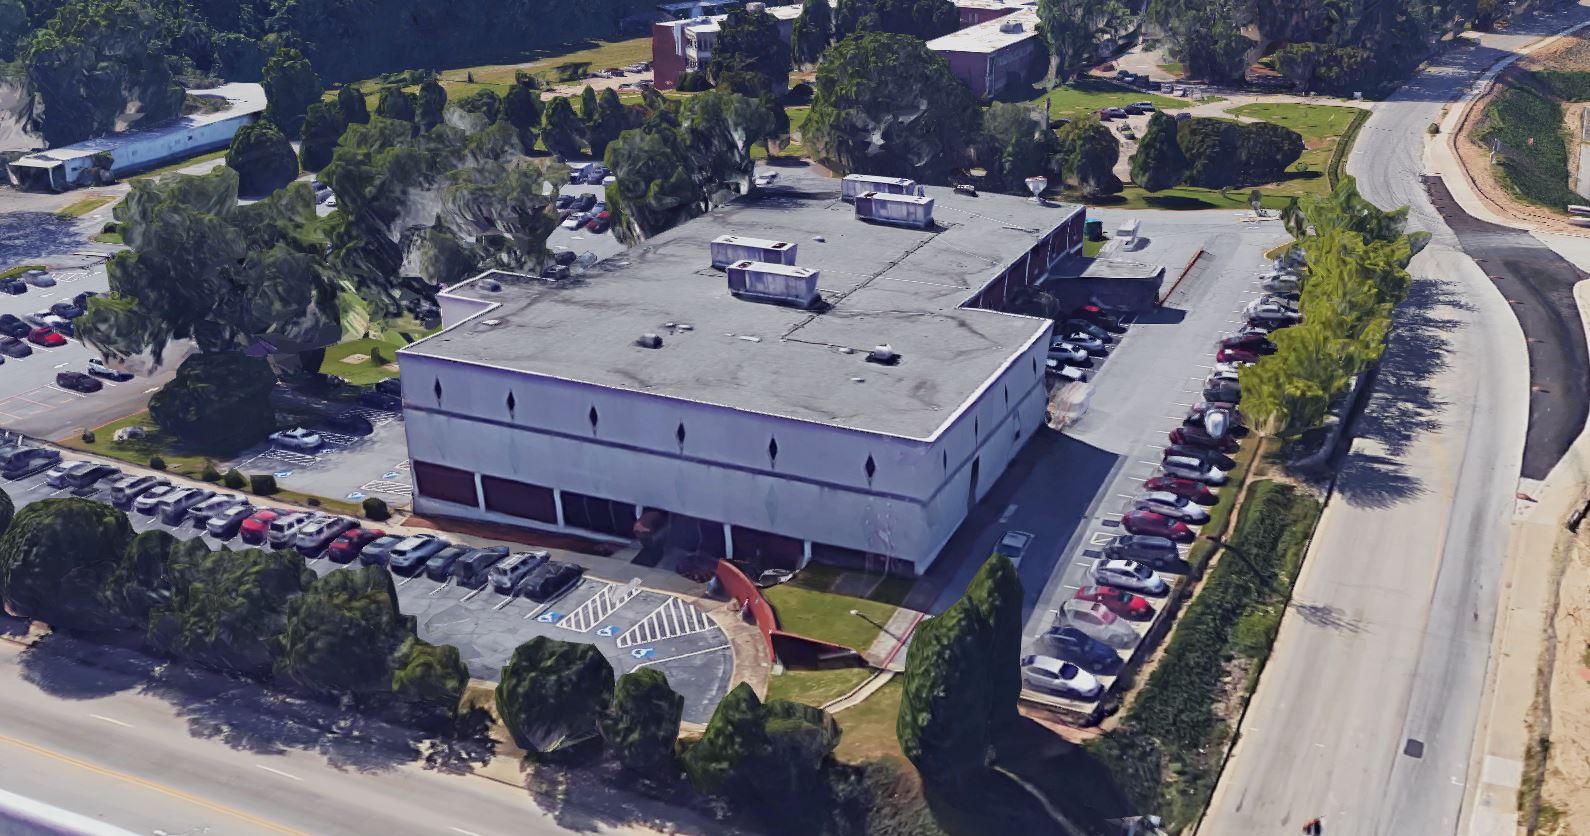 An aerial view of a nearly windowless three-story brick building.